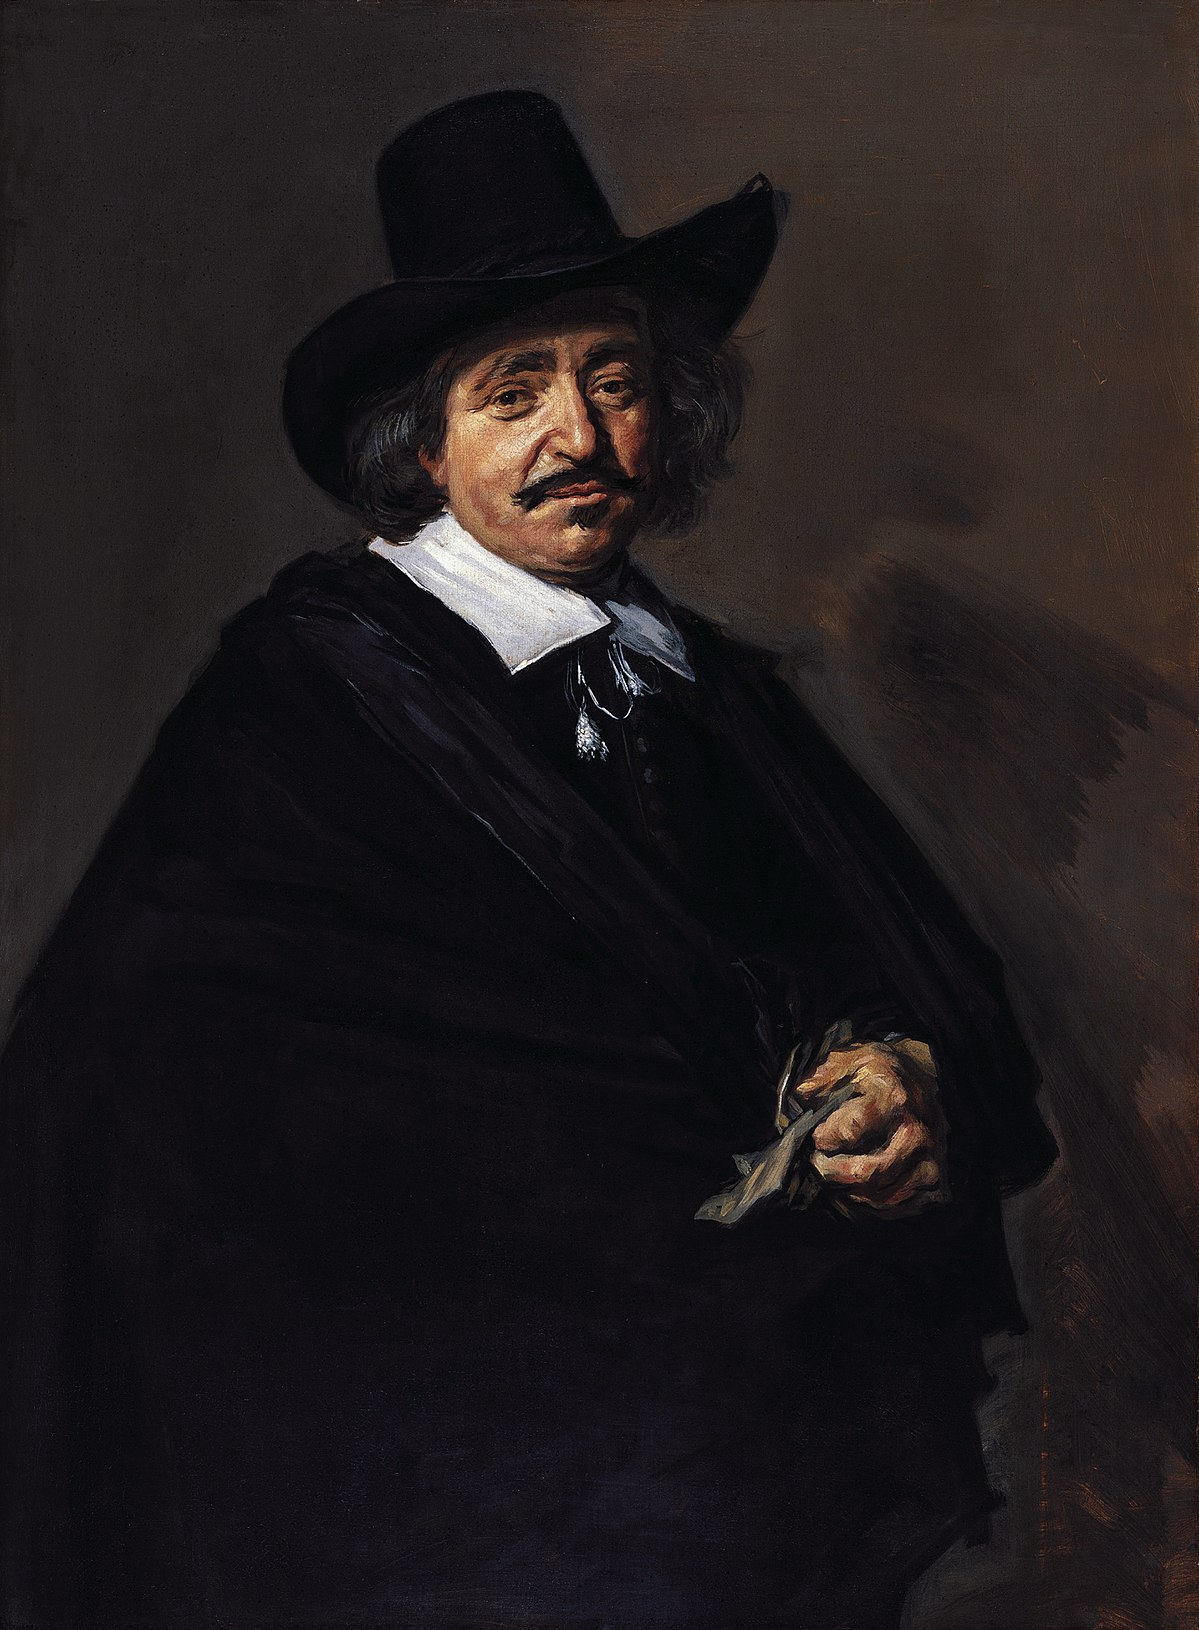 Frans Hals/Work/9 - Wikimedia Commons